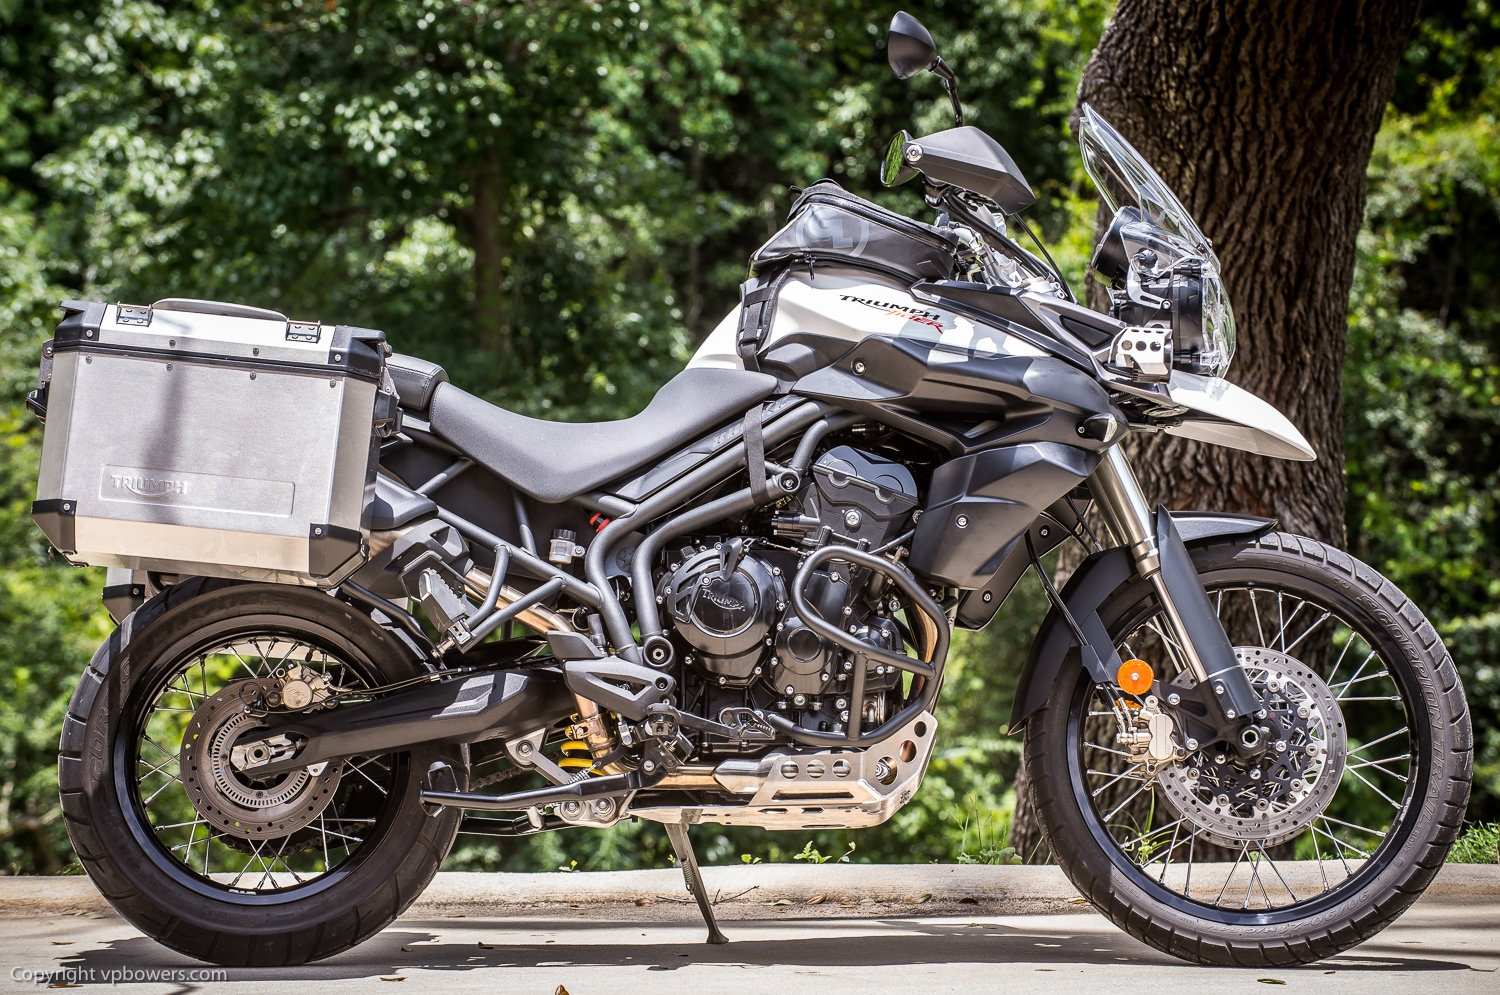 hight resolution of 2014 triumph tiger 800 xc abs in mobile alabama photo 6